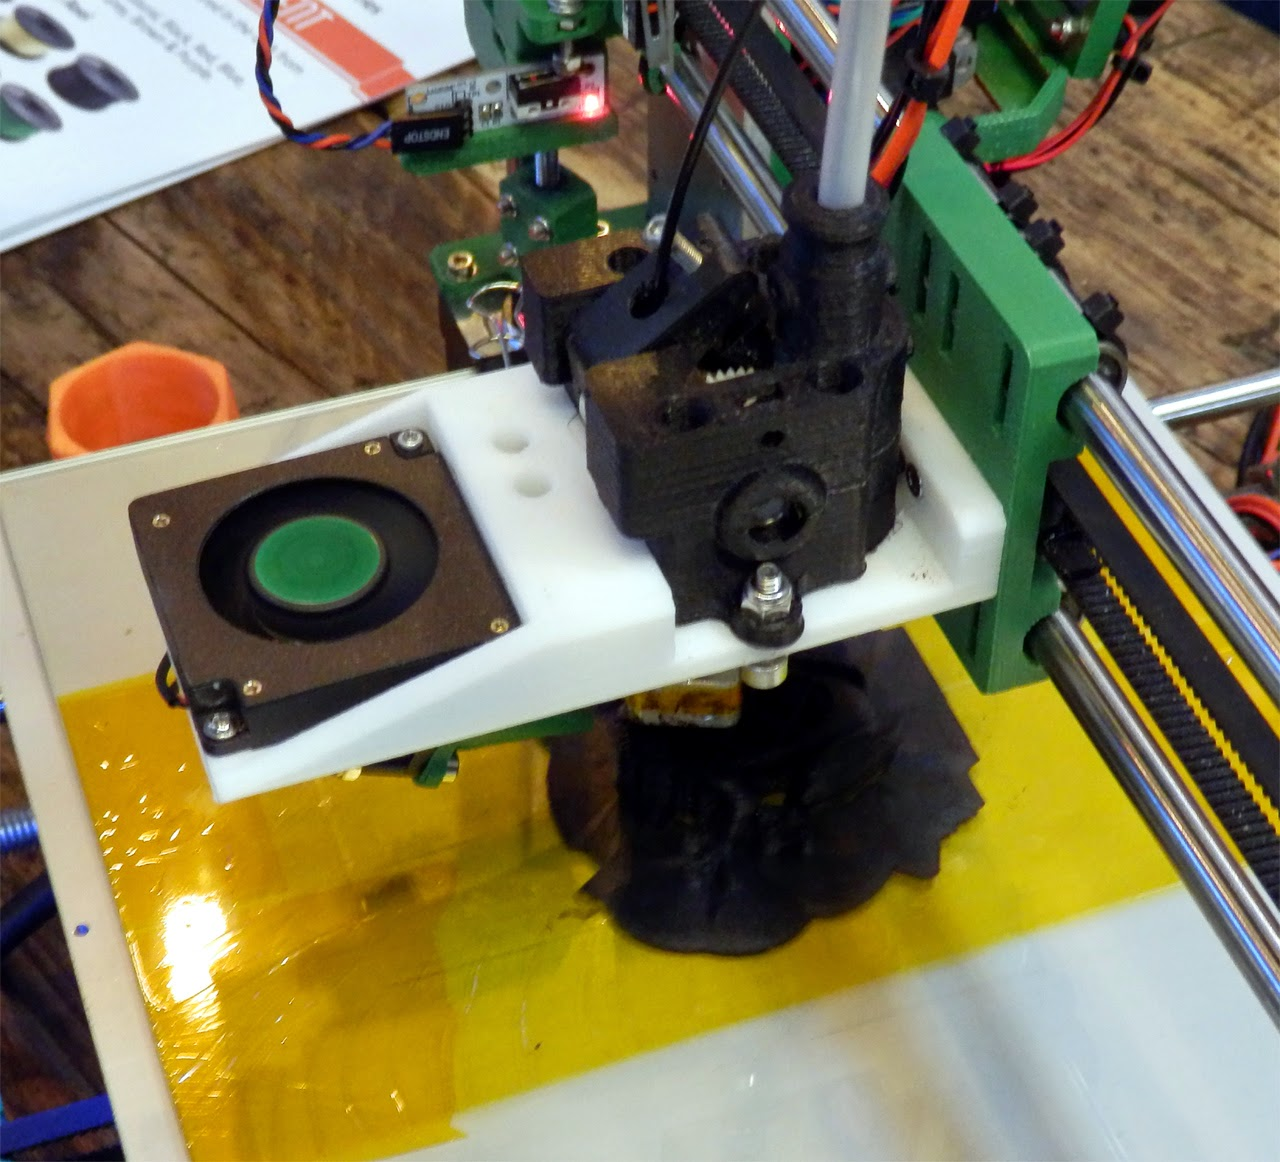 Reprap Development And Further Adventures In Diy 3d Printing Alike The Megatronics This Board Also Combines Ramps Arduino Mega A Flexible Drive Shaft Similar To Types Dremel Use Was Being Used Bowden Filament Pinch Wheel Gear Taking Motor Weight Off